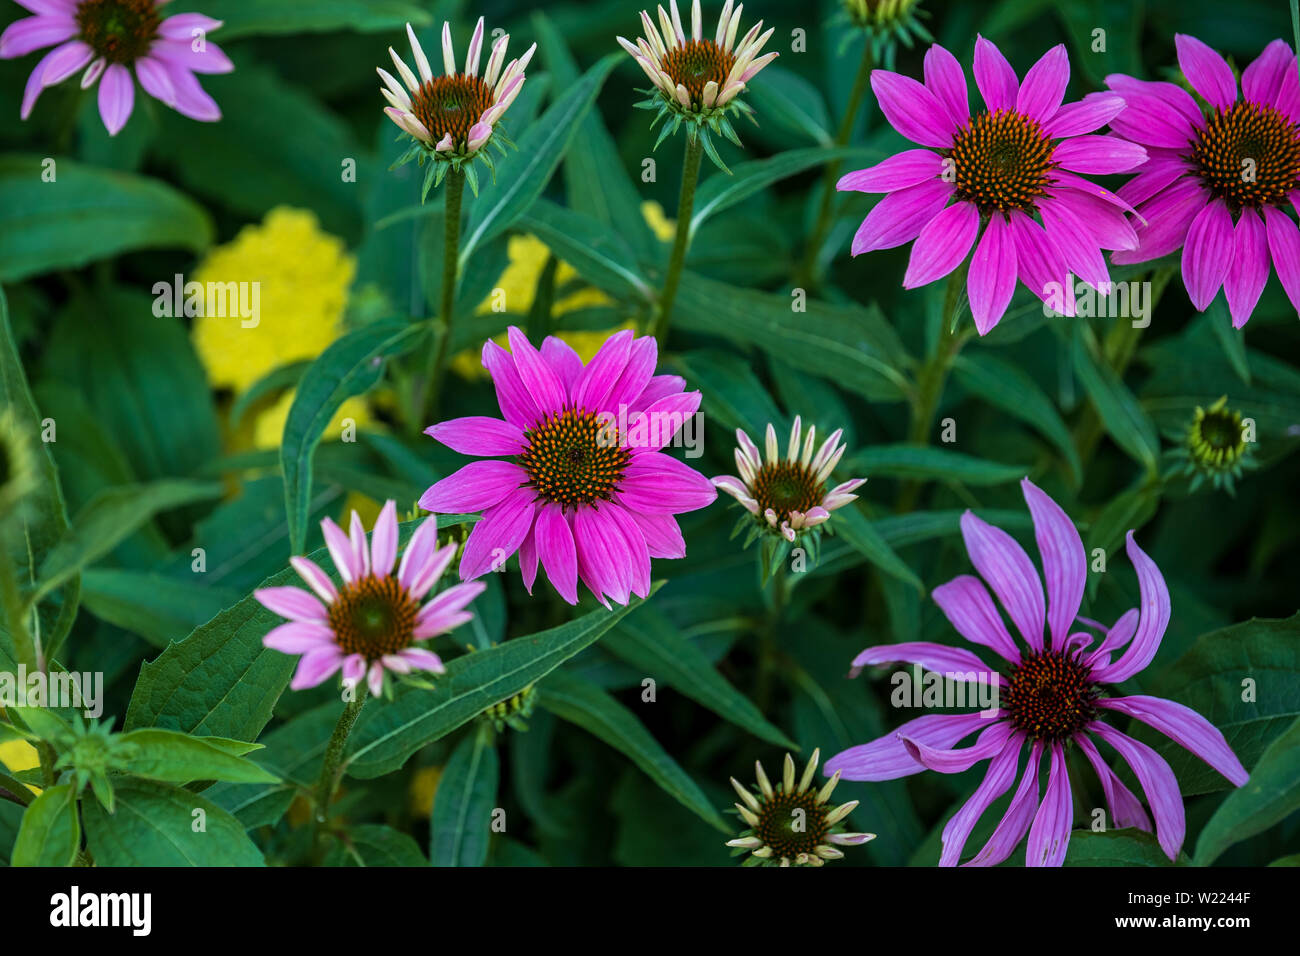 a group of coneflowers blooming in a downtown flowerbed - Stock Image